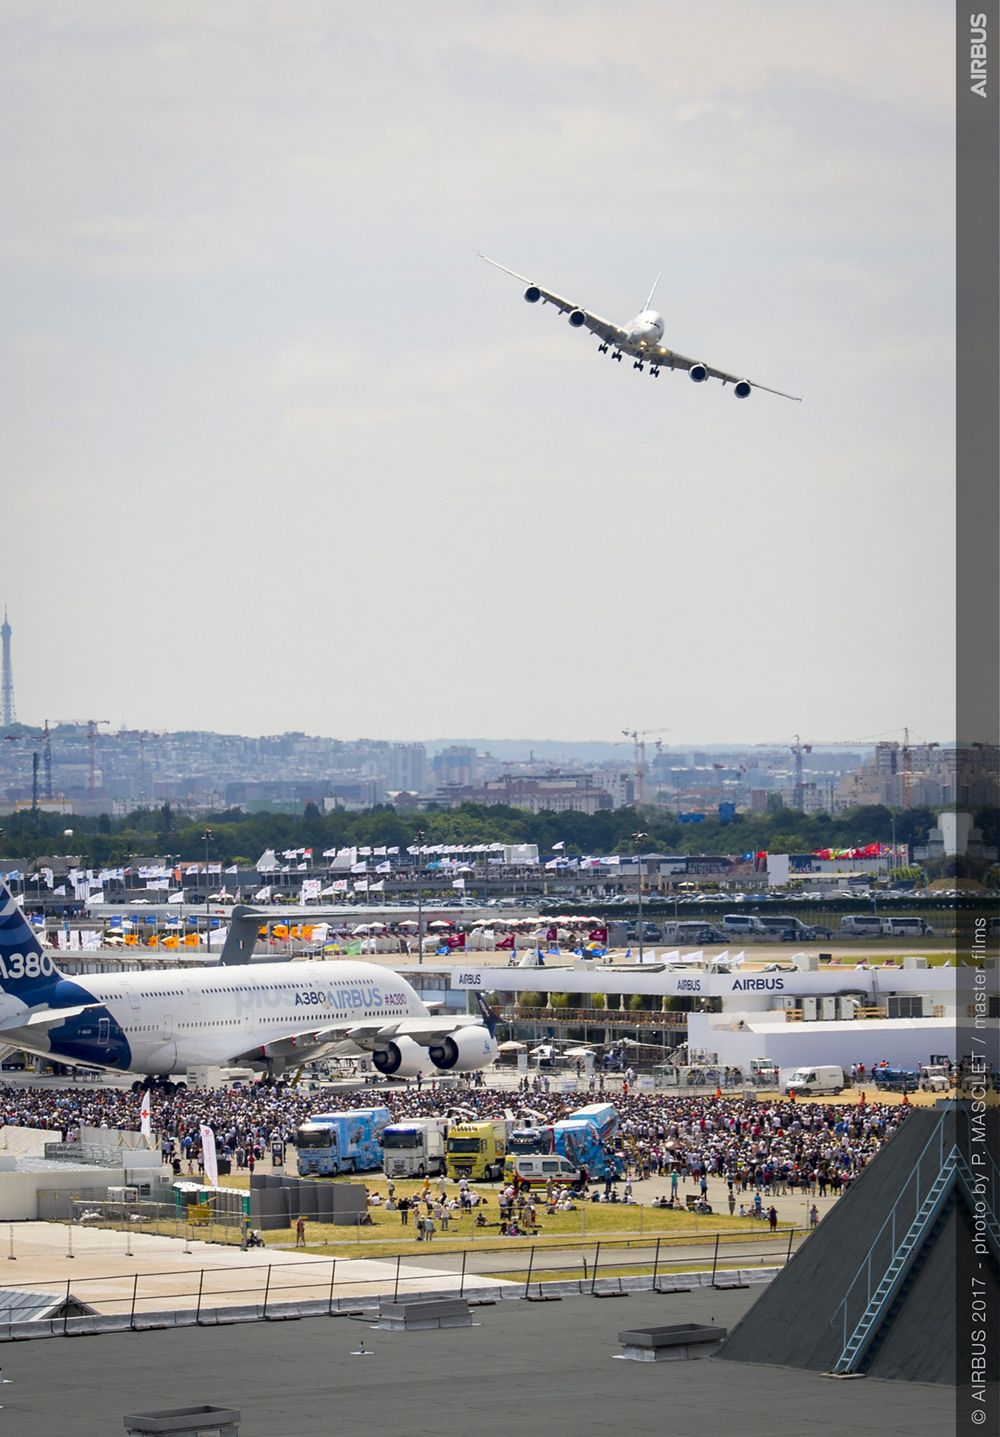 A380 Flying Display - 23 June PAS 2017